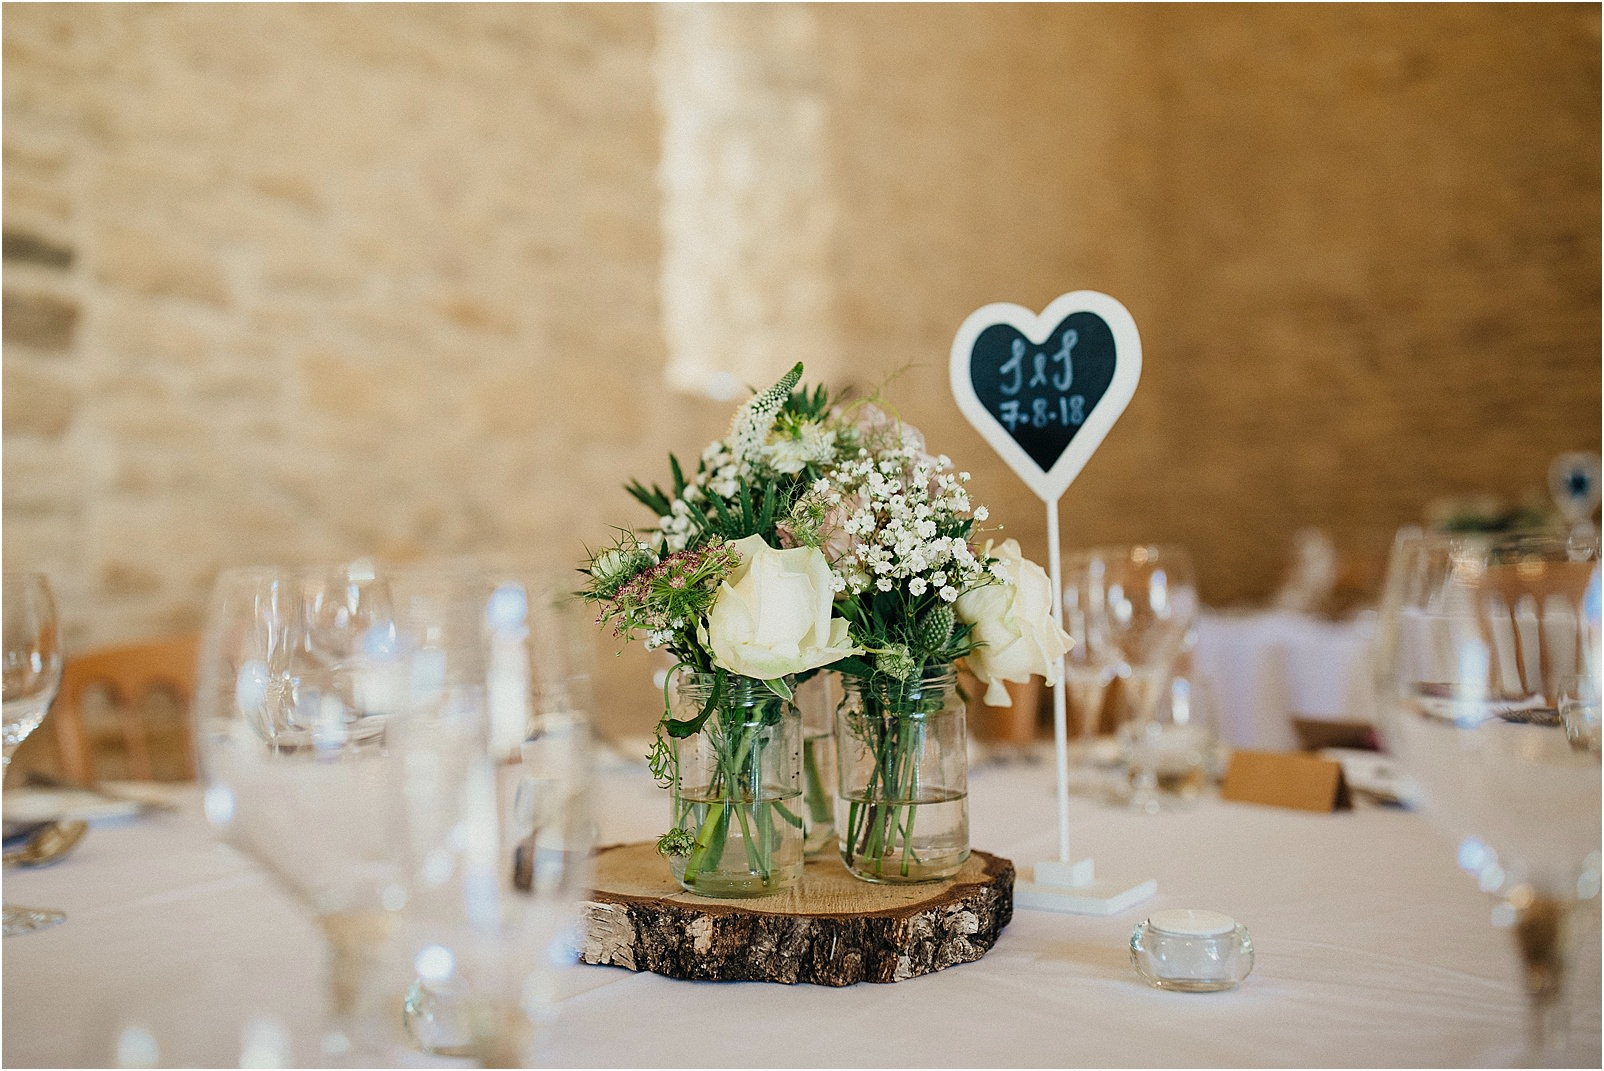 Table decoration at Kingscote Barn